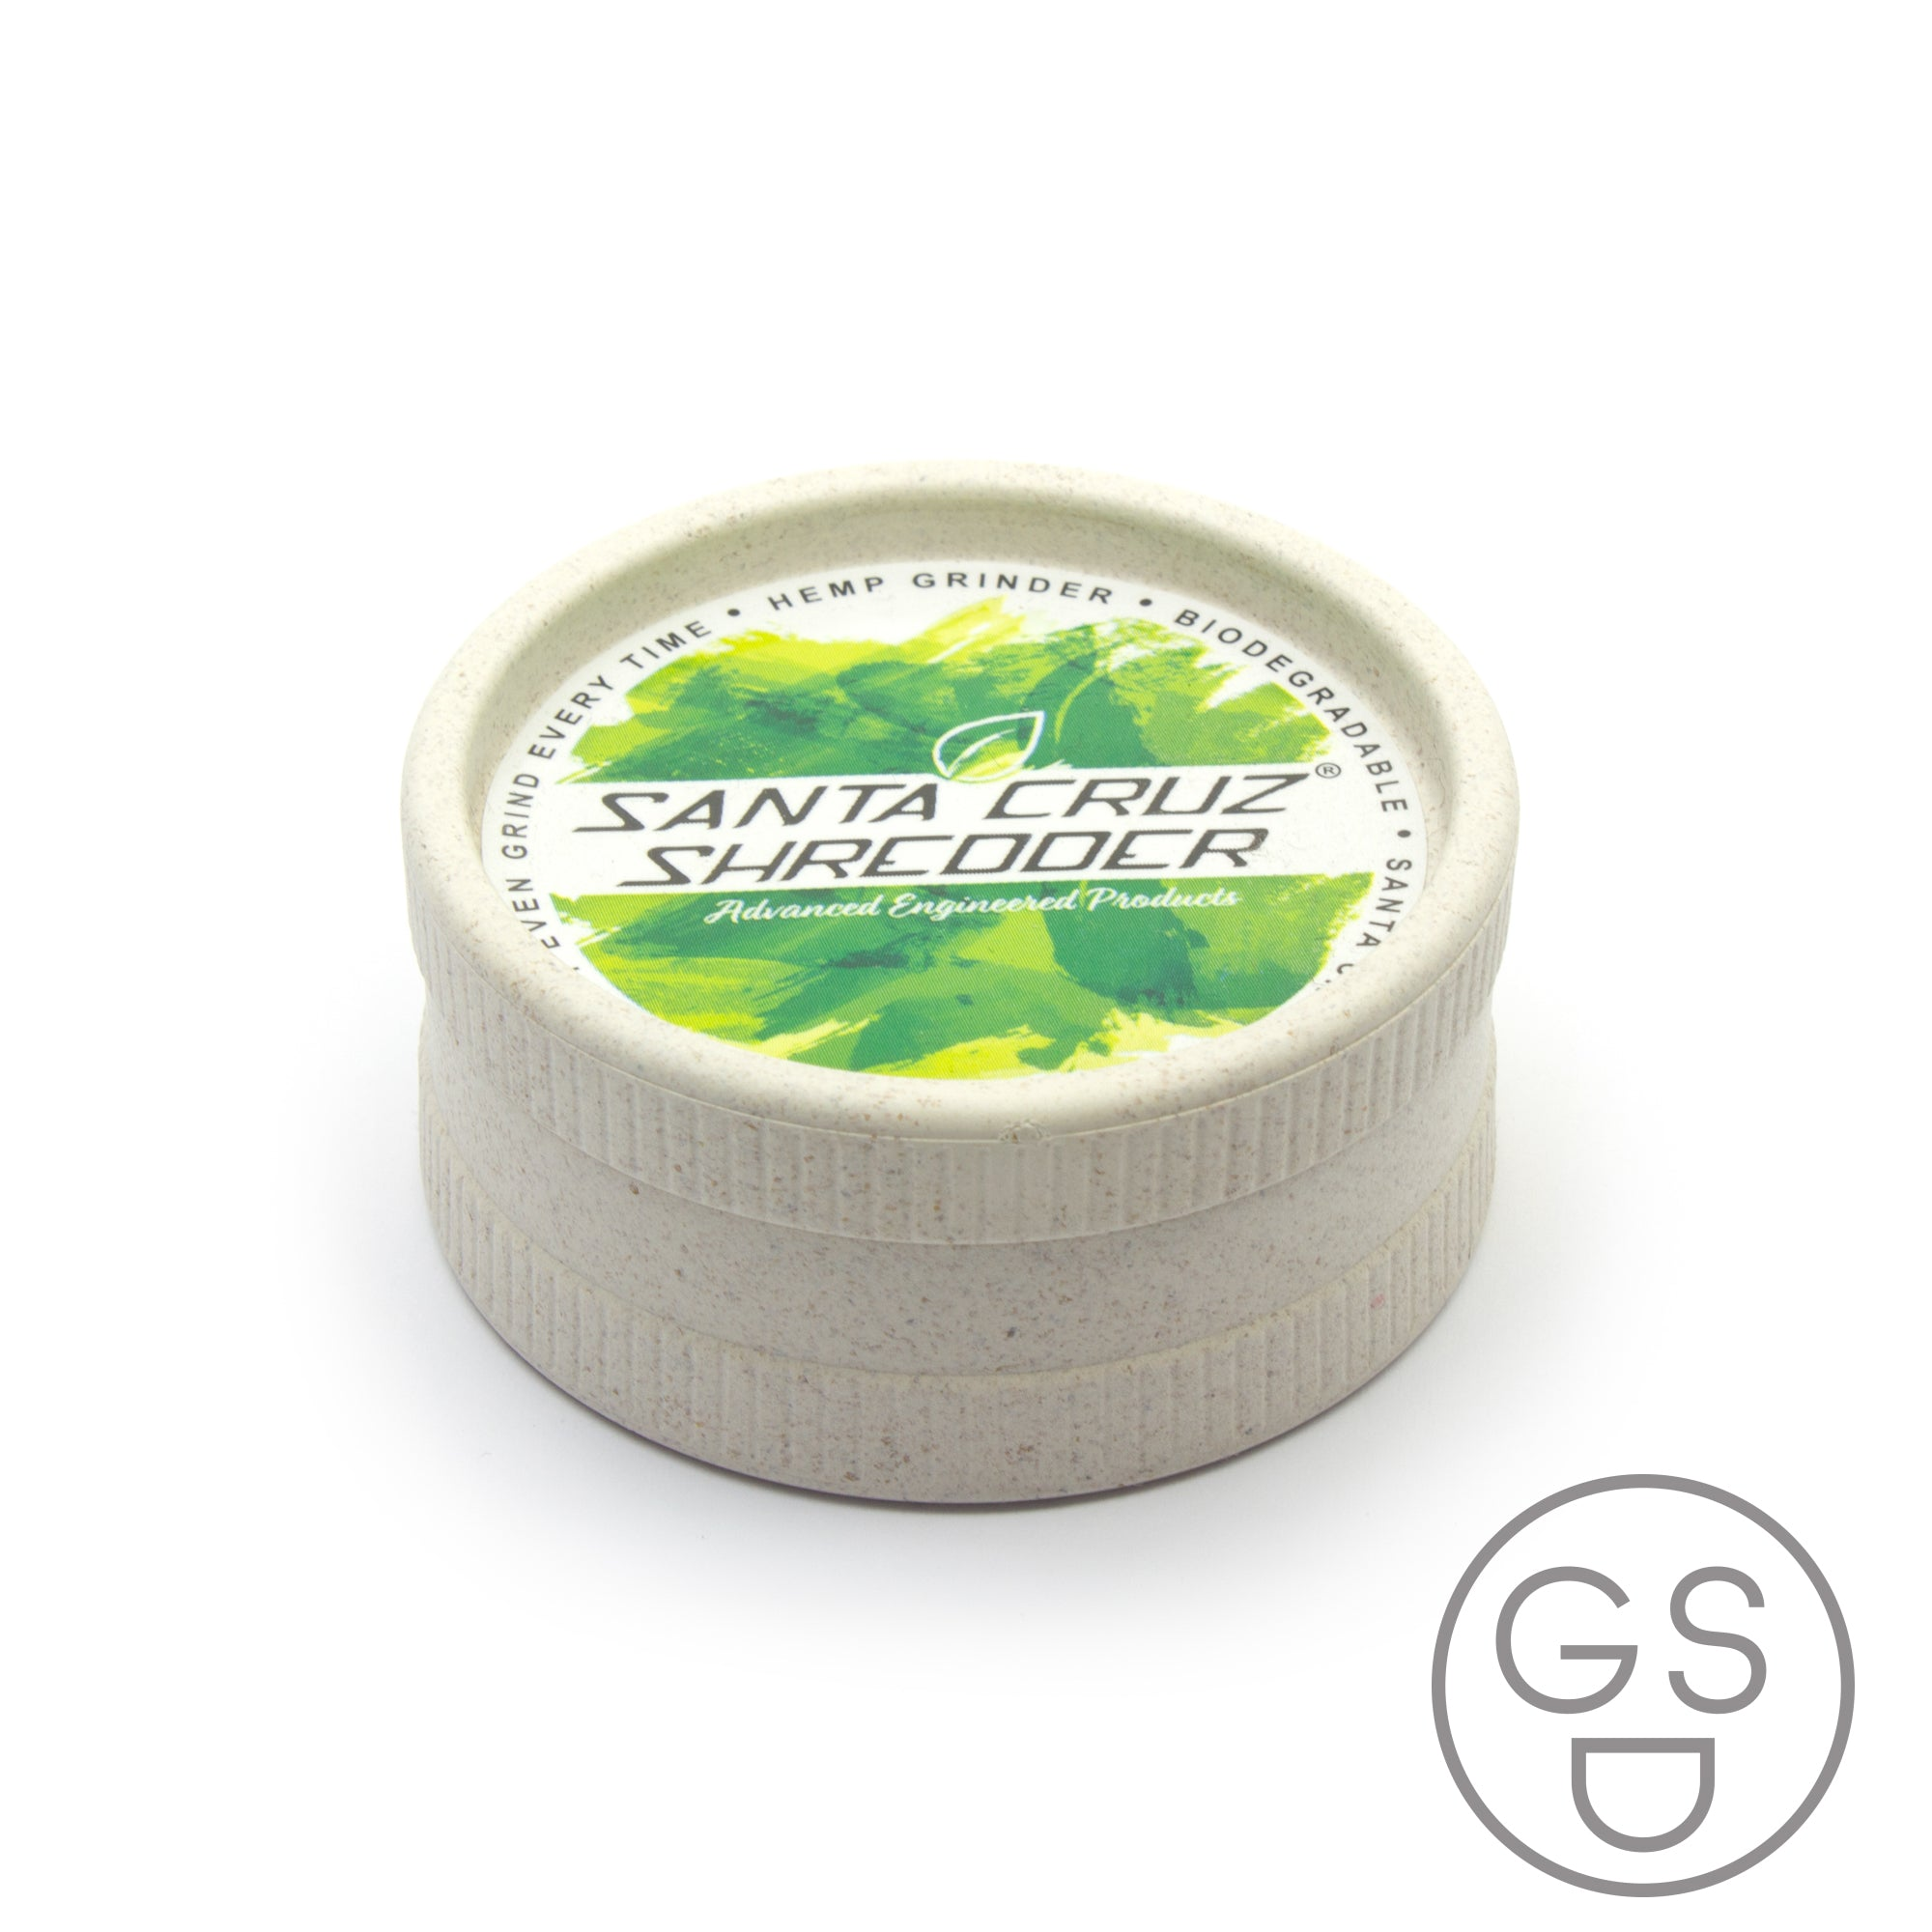 Santa Cruz Biodegradable Hemp 2pc Grinder